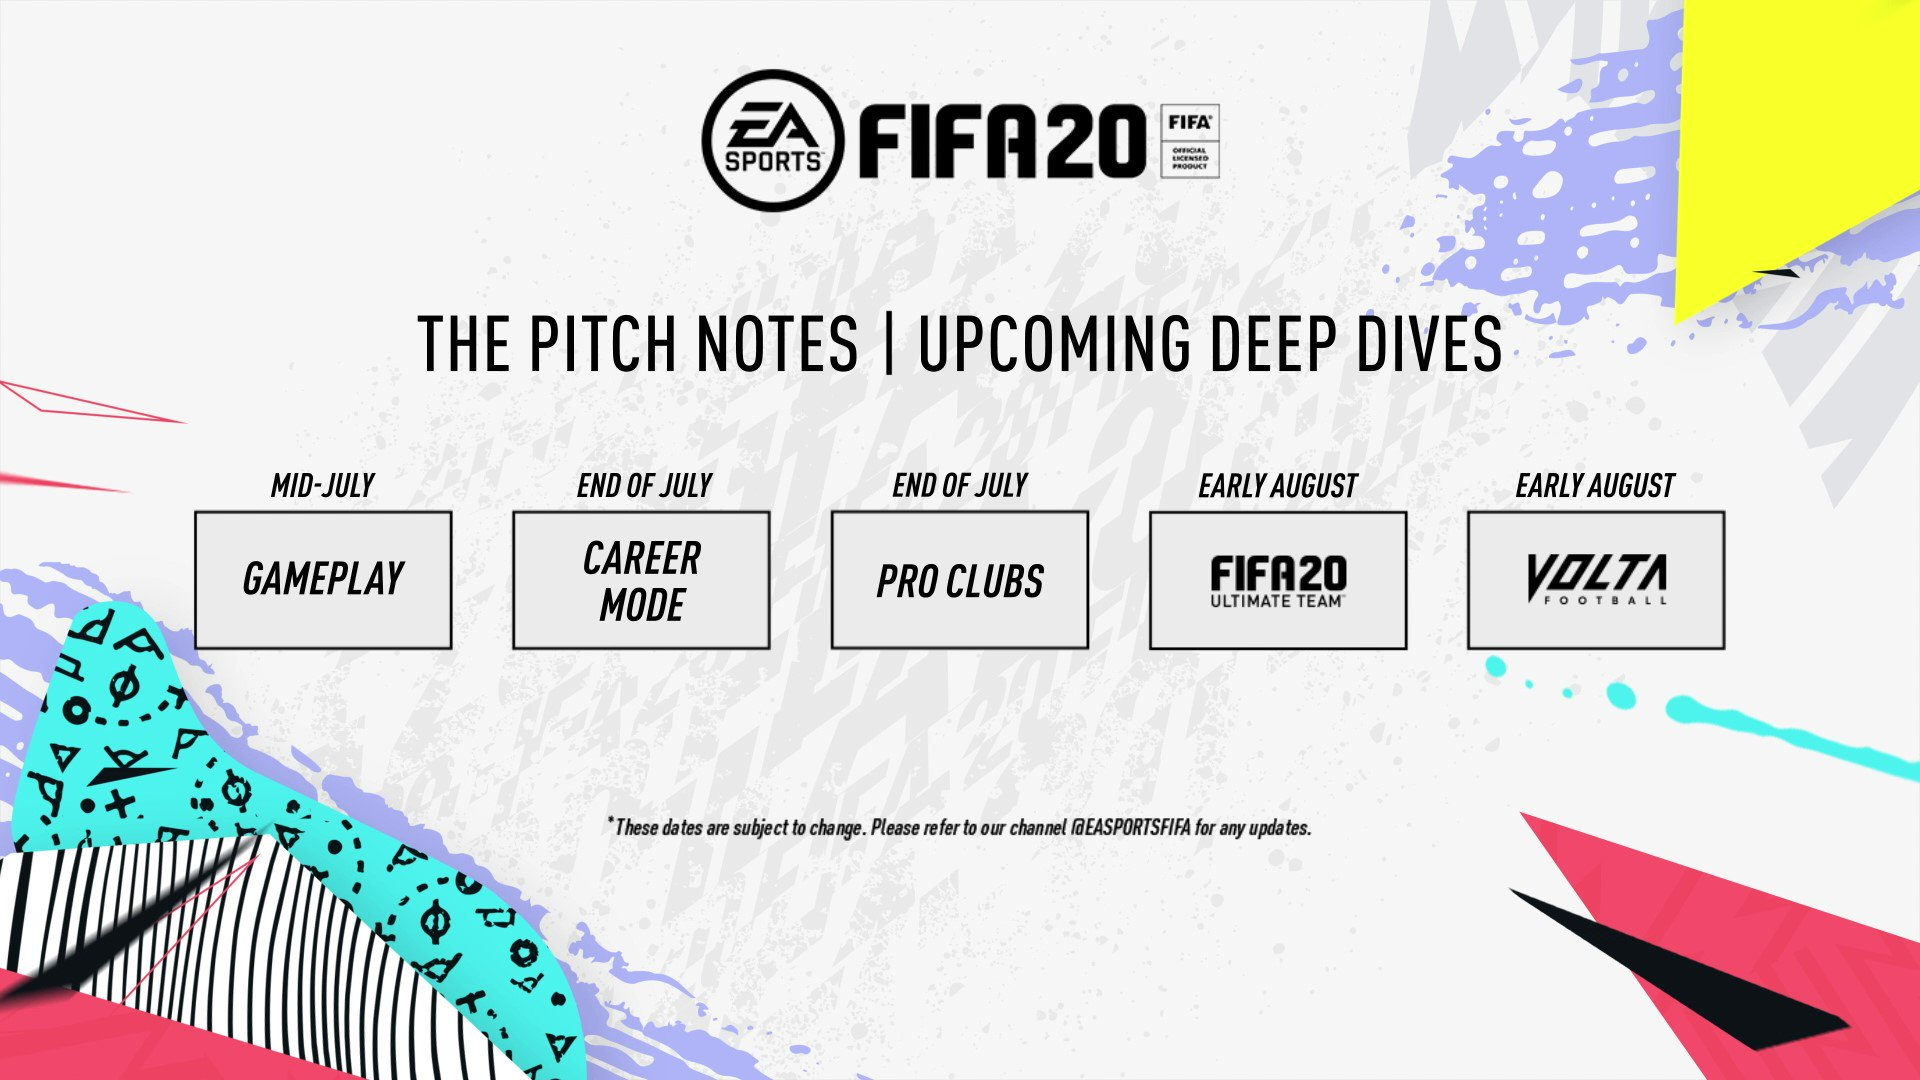 Calendrier Ea.Ea Sports Fifa On Twitter Read More About Fifa20 Gameplay